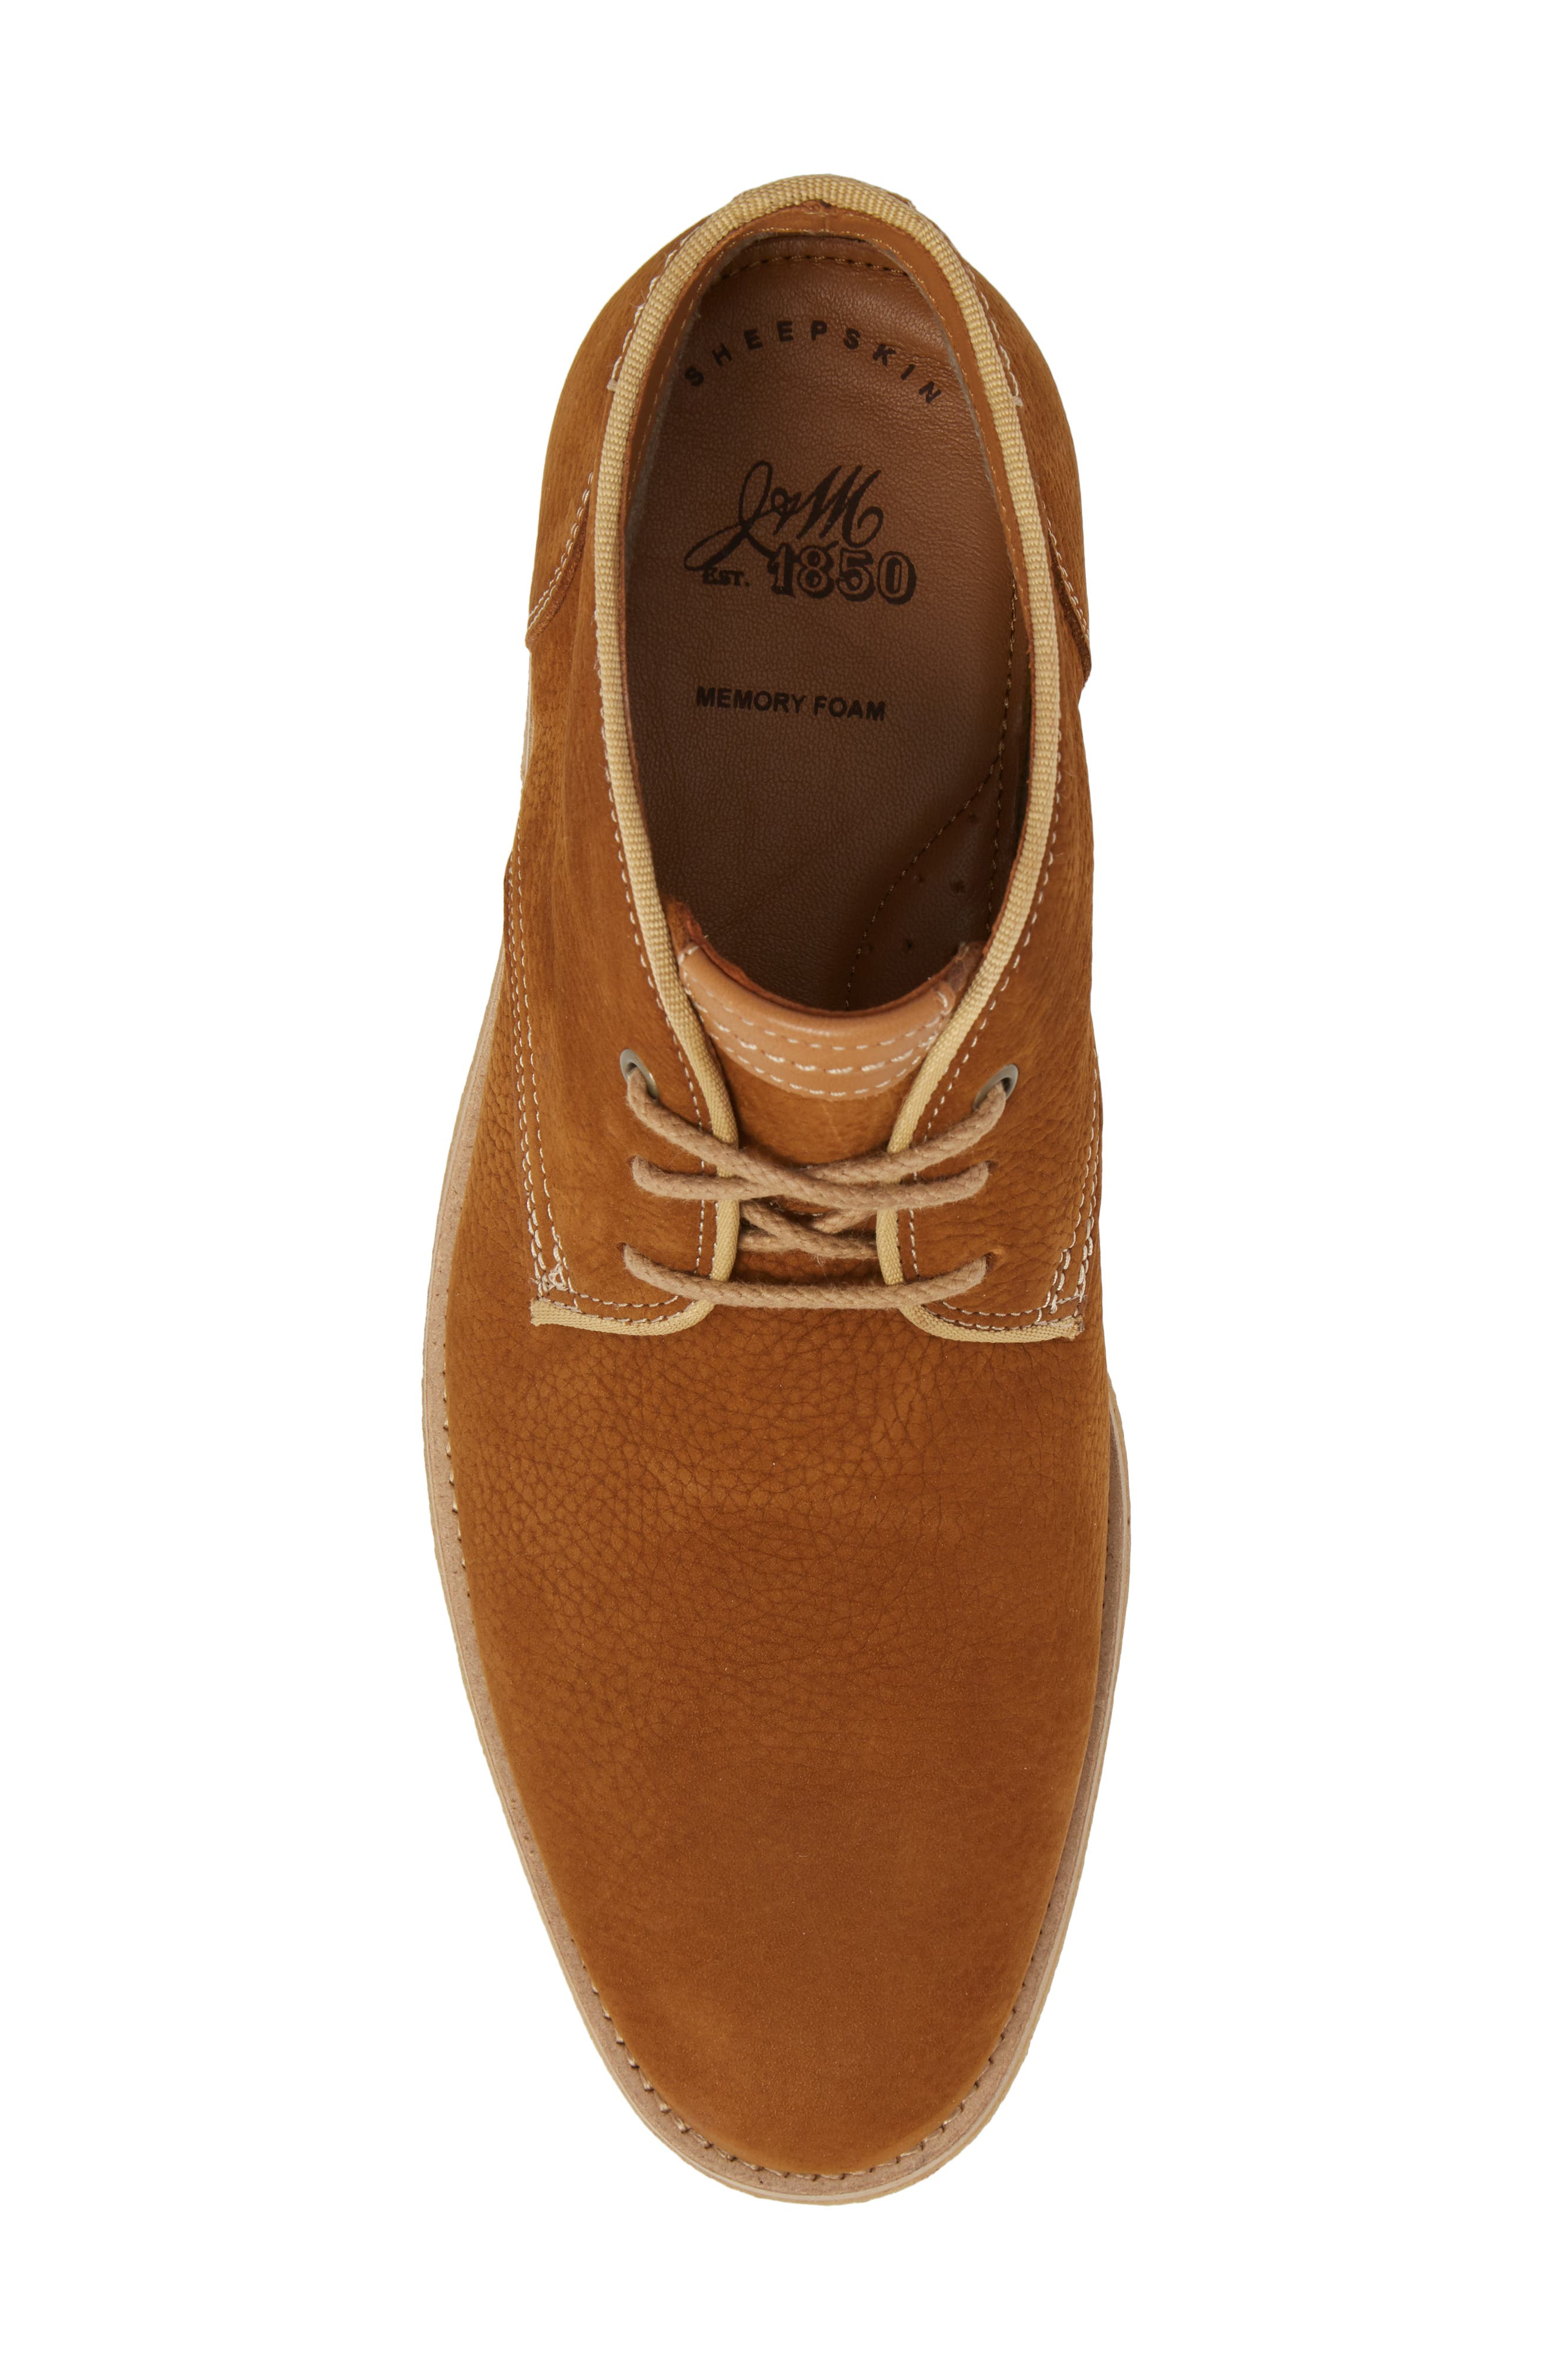 Howell Water Resistant Chukka Boot,                             Alternate thumbnail 5, color,                             Tan Nubuck Leather